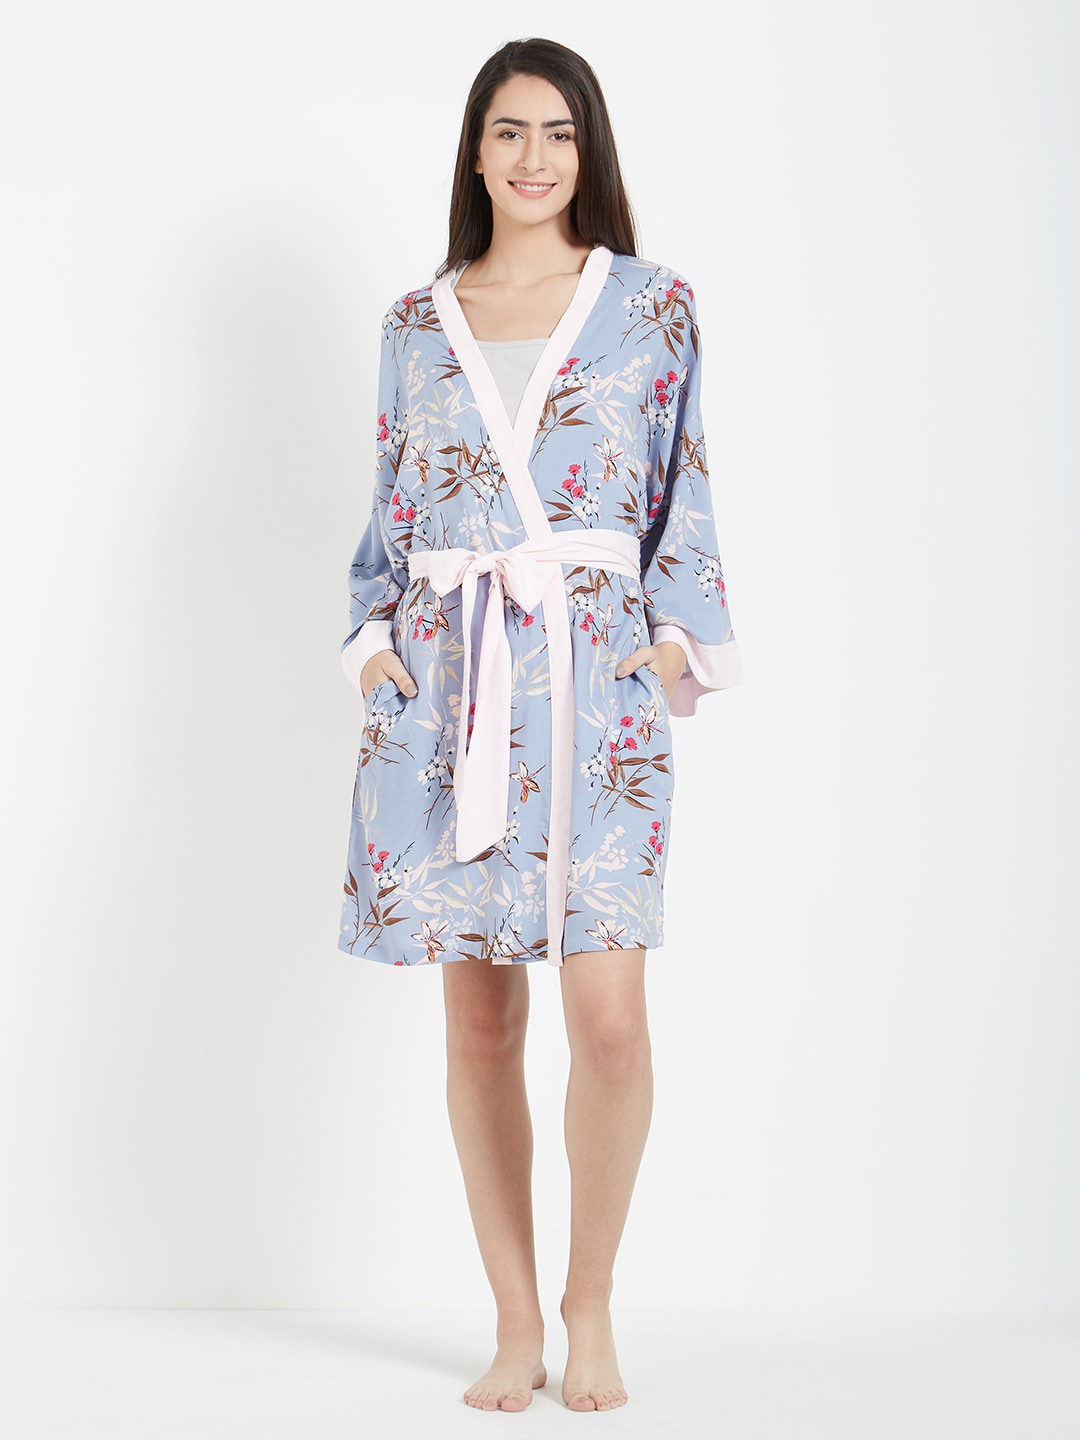 Women Nightwear Robe - Buy Women Nightwear Robe online in India 6c972ca4f